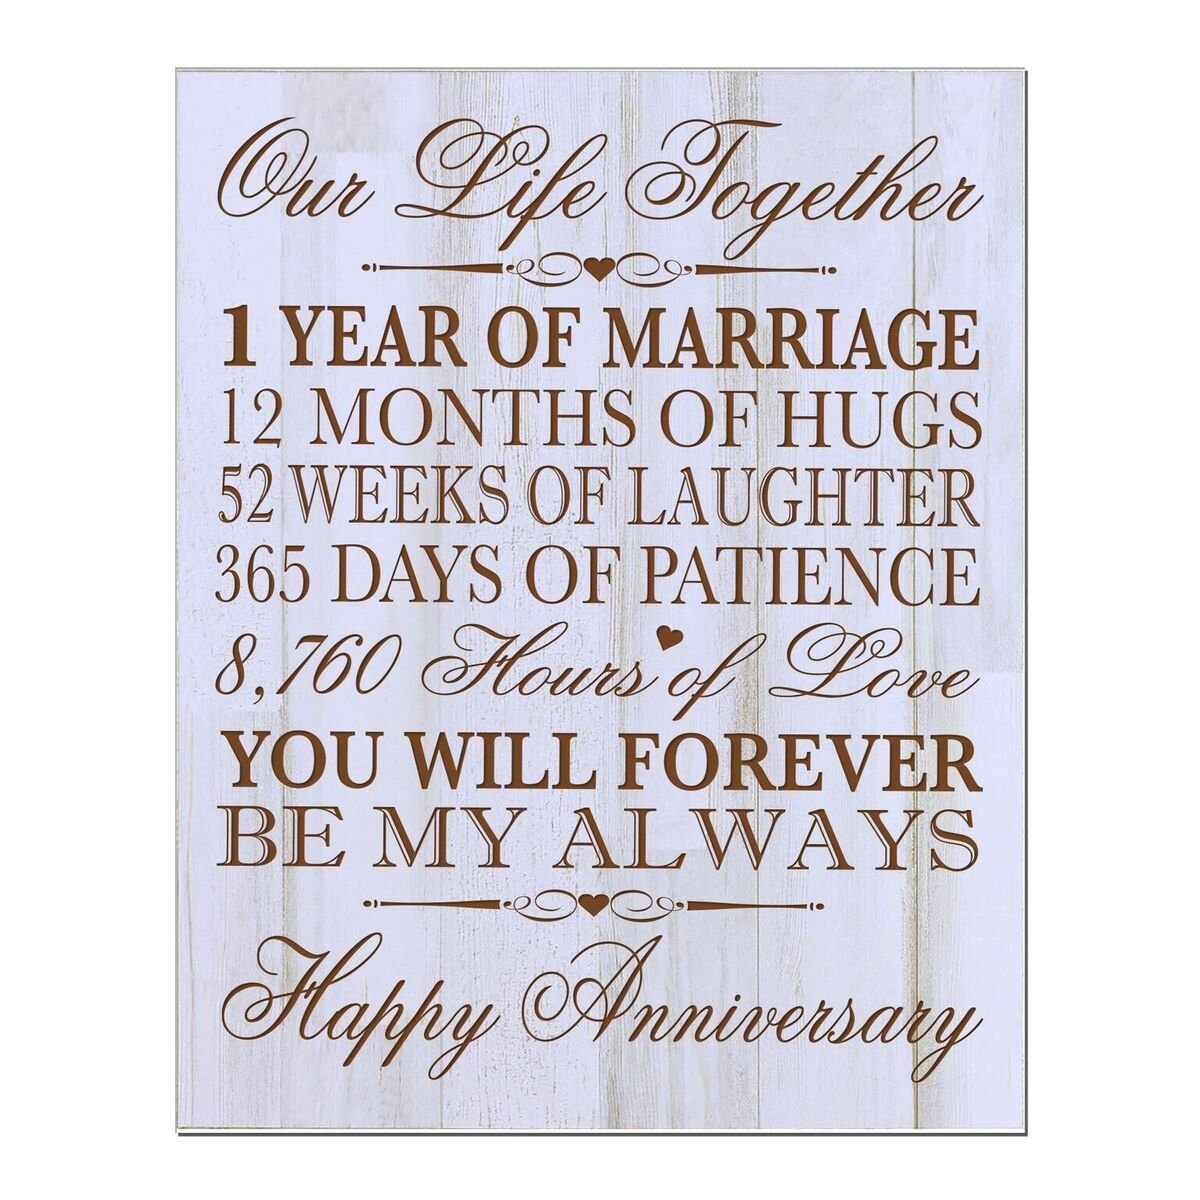 """LifeSong Milestones 1st Wedding Anniversary Wall Plaque Gifts for Couple, 1st Anniversary Gifts for Her,1st Wedding Anniversary Gifts for Him 12"""" W X 15"""" H Wall Plaque By (Black) 63265 Black"""